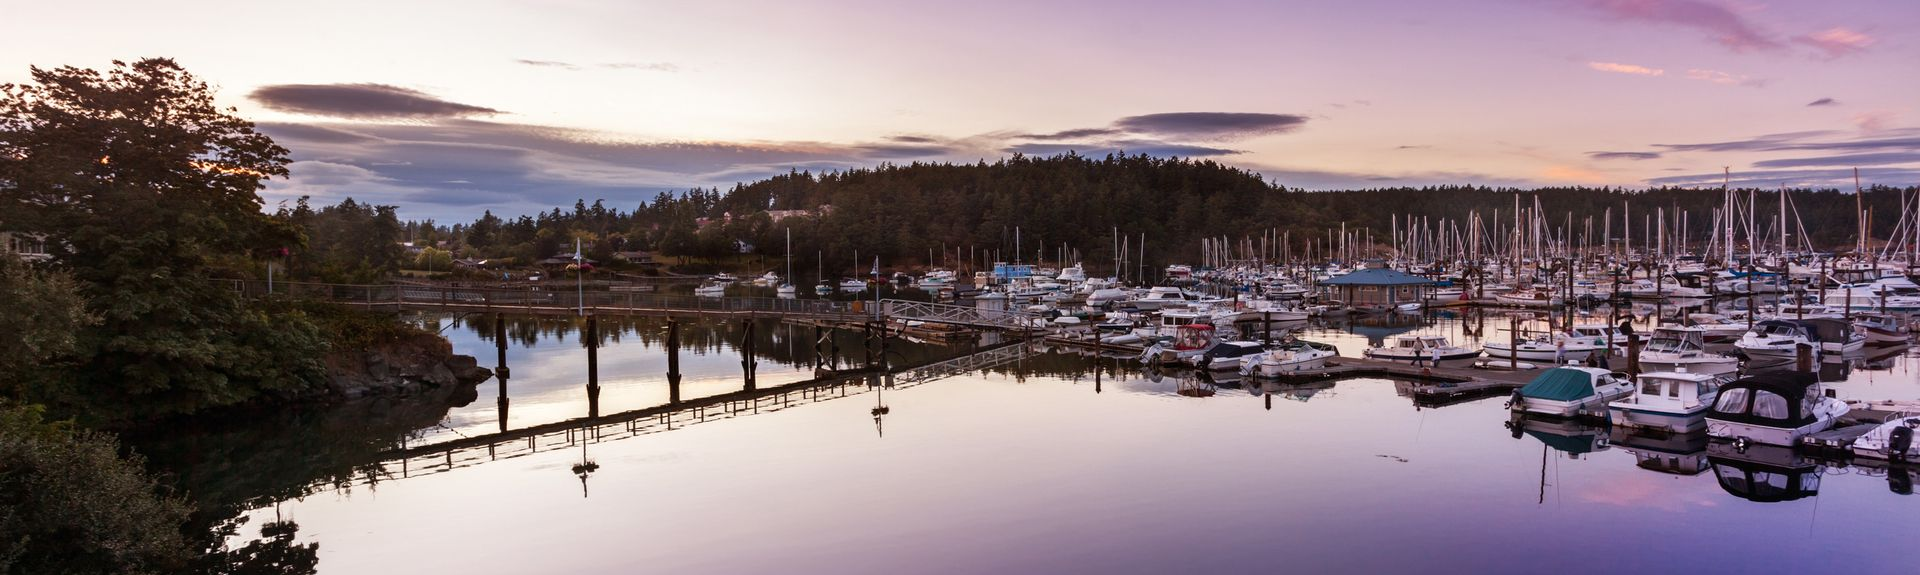 Friday Harbor, Washington, Stati Uniti d'America